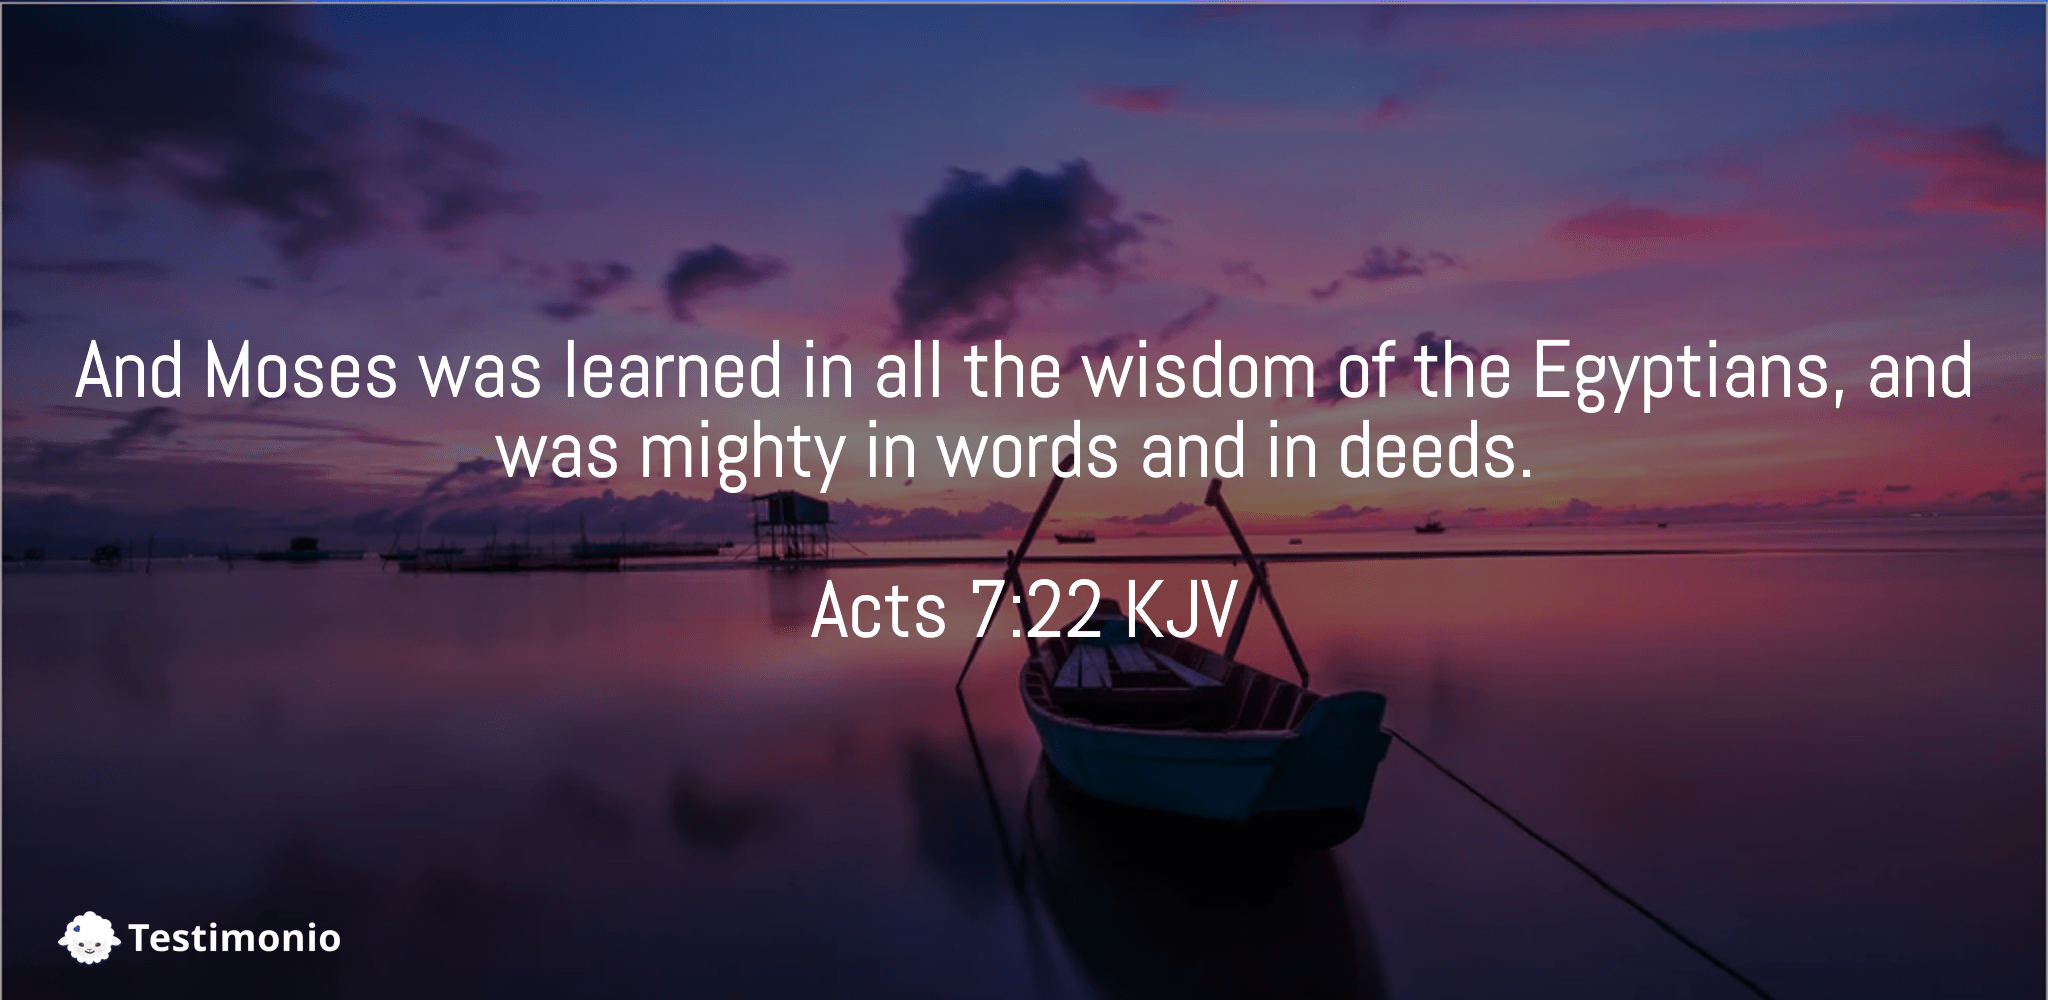 Acts 7:22